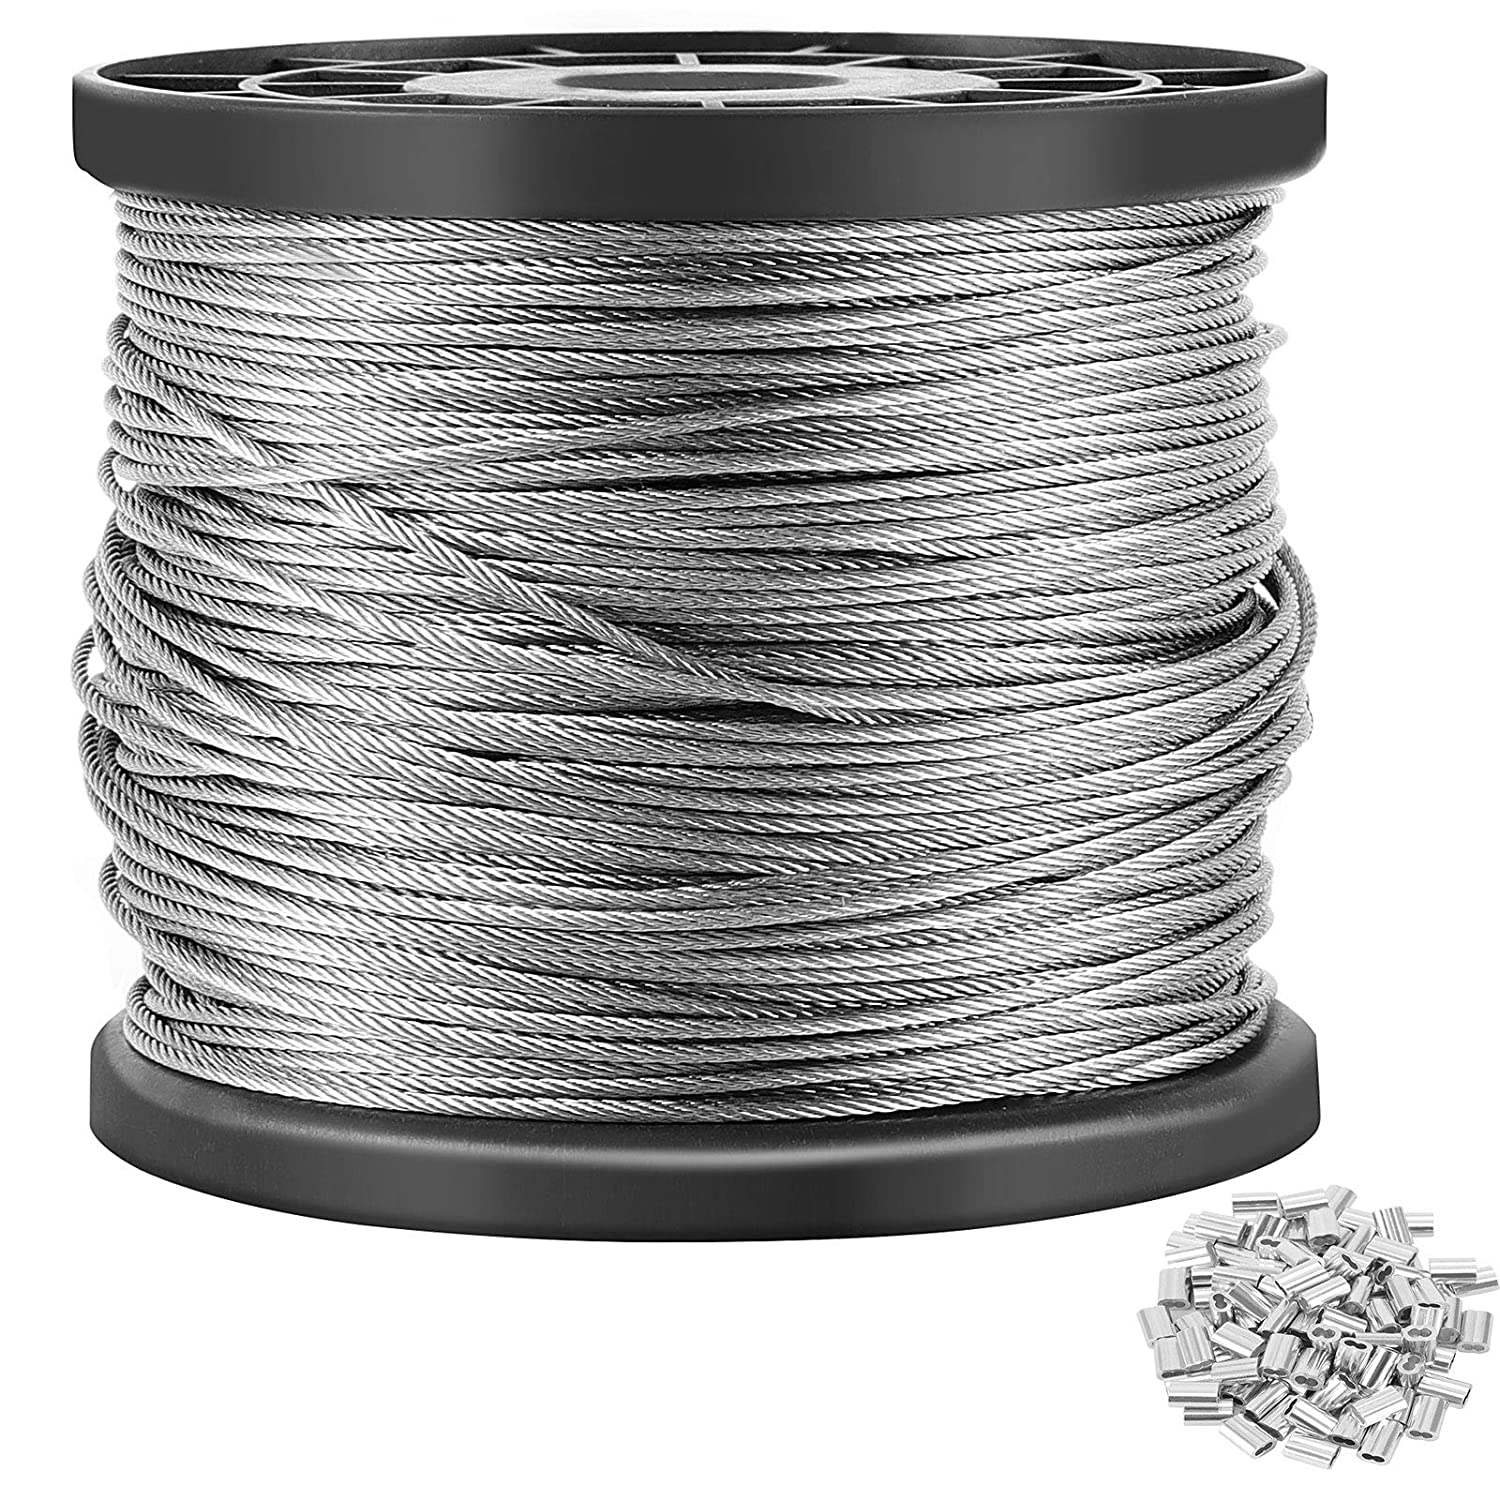 ZOENHOU 400 Ft x 1 16 Direct stock discount Inch 7x7 Stainless Special Campaign Wire Rope Strand Steel